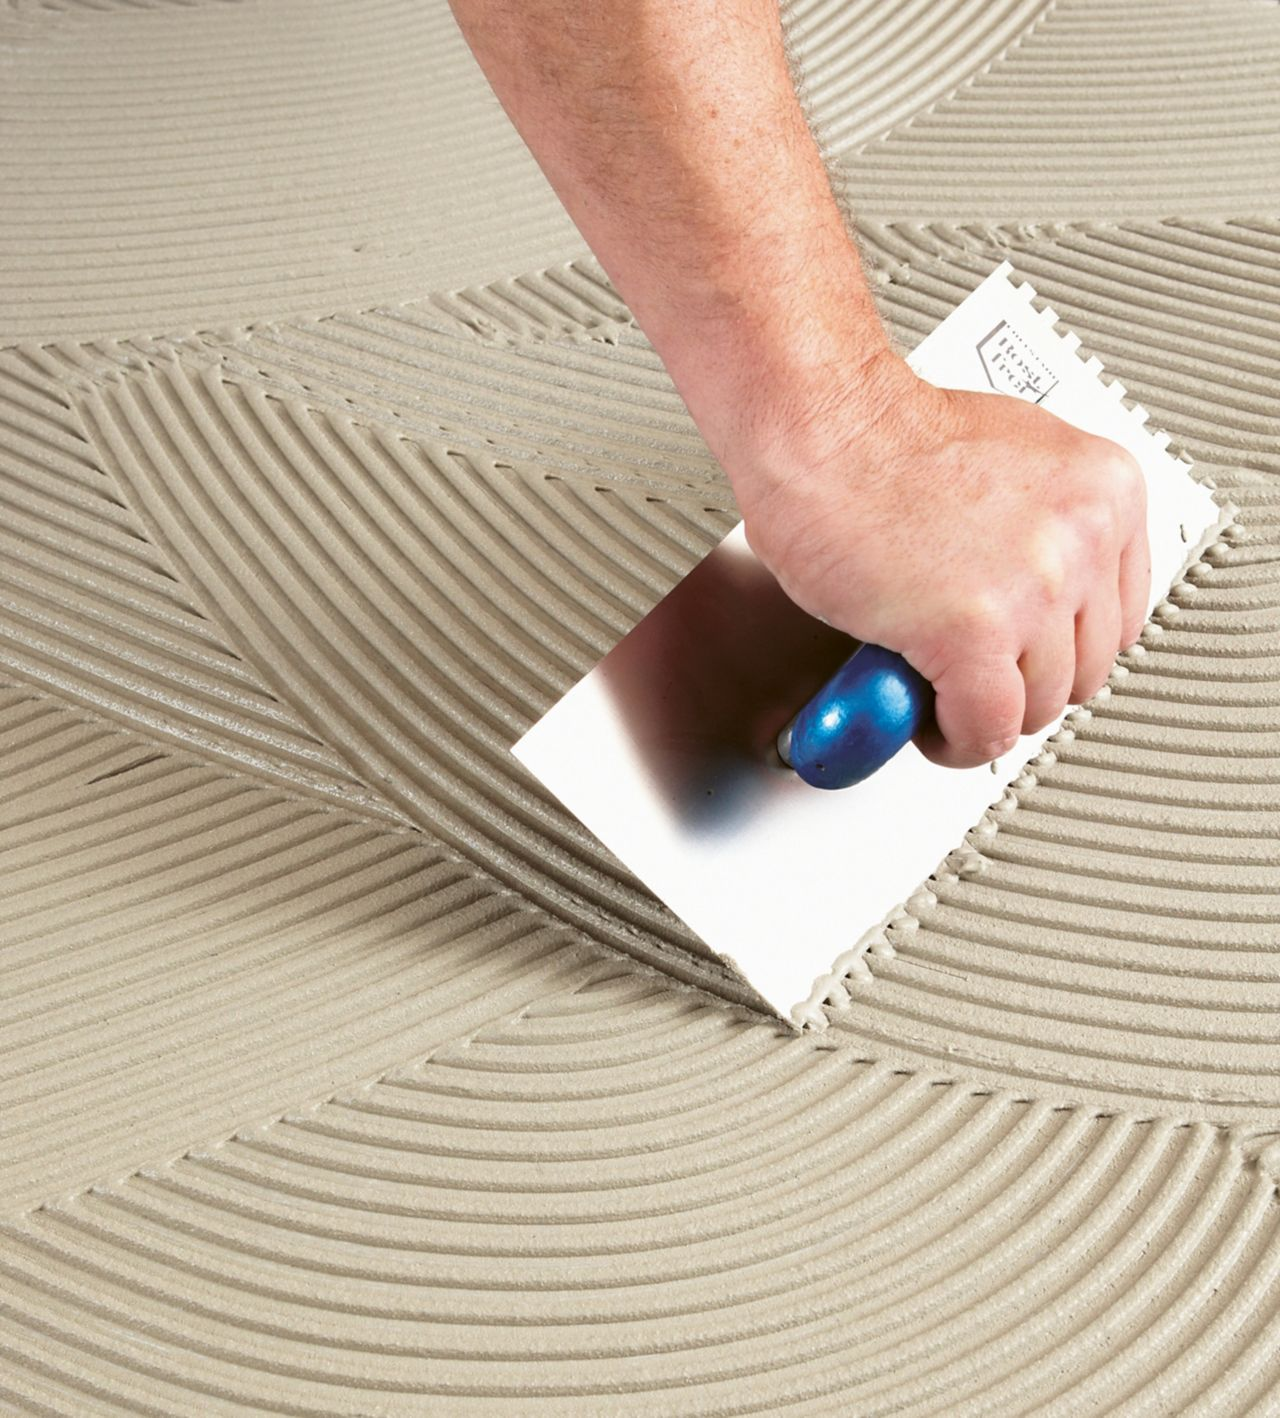 Application of tile adhesives